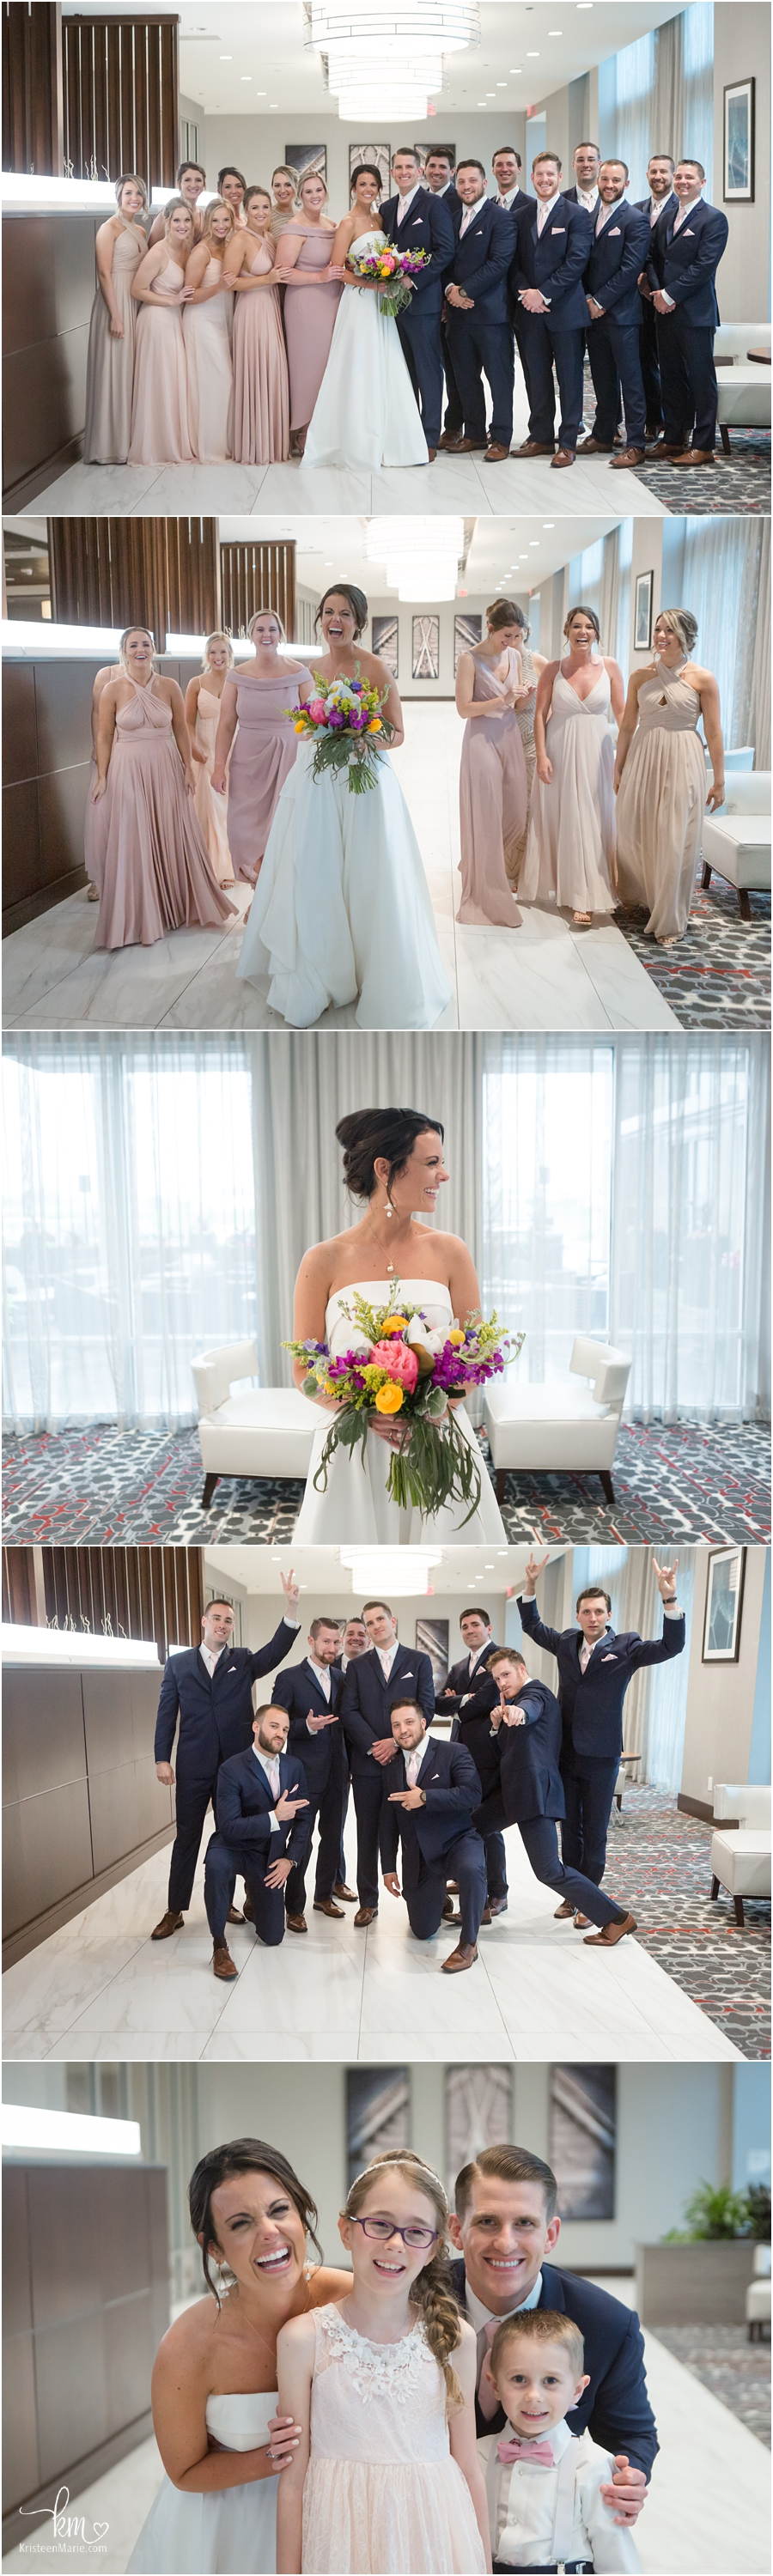 formal wedding pictures in hotel lobby